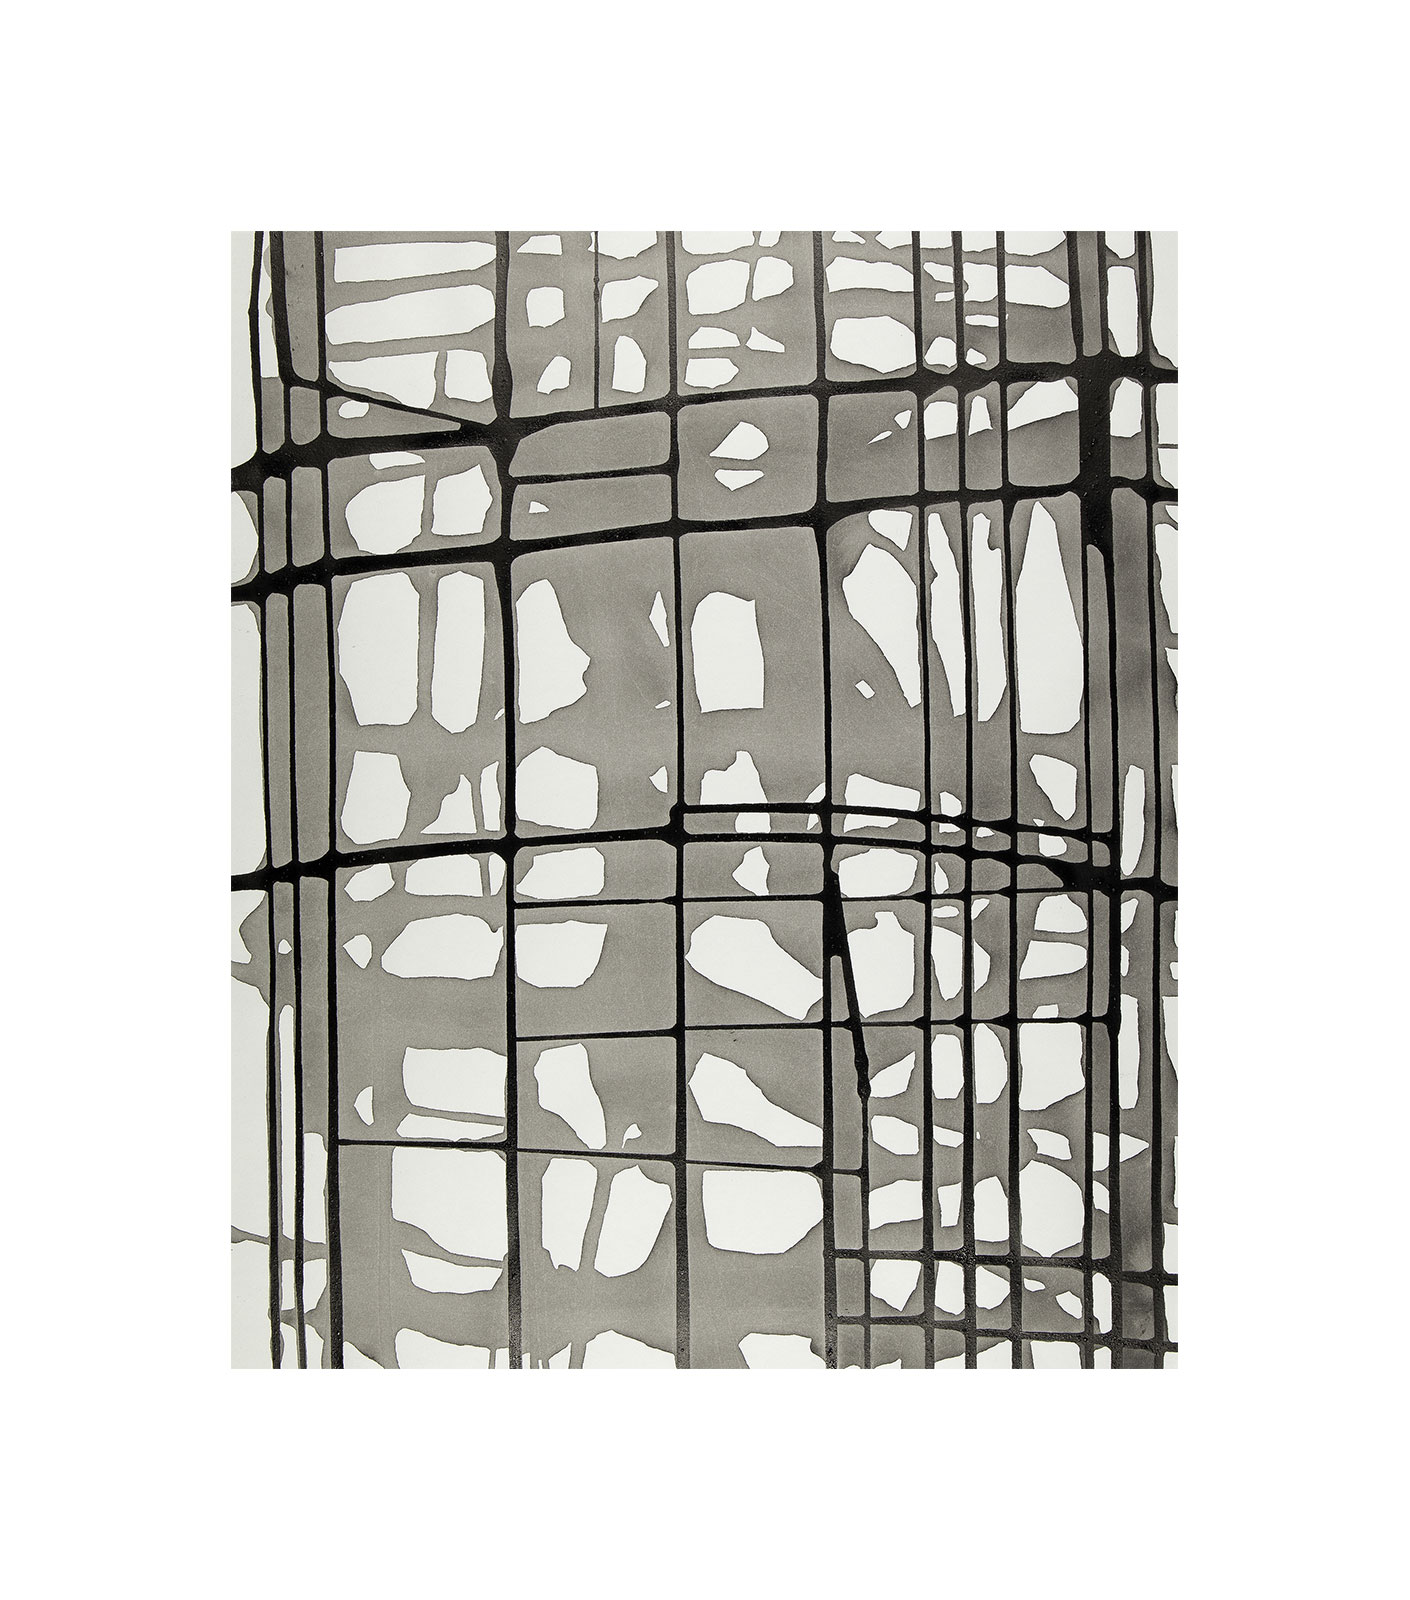 Ink 3.4, indian ink on paper, wash drawing, black and white artwork, jf escande, contemporary art